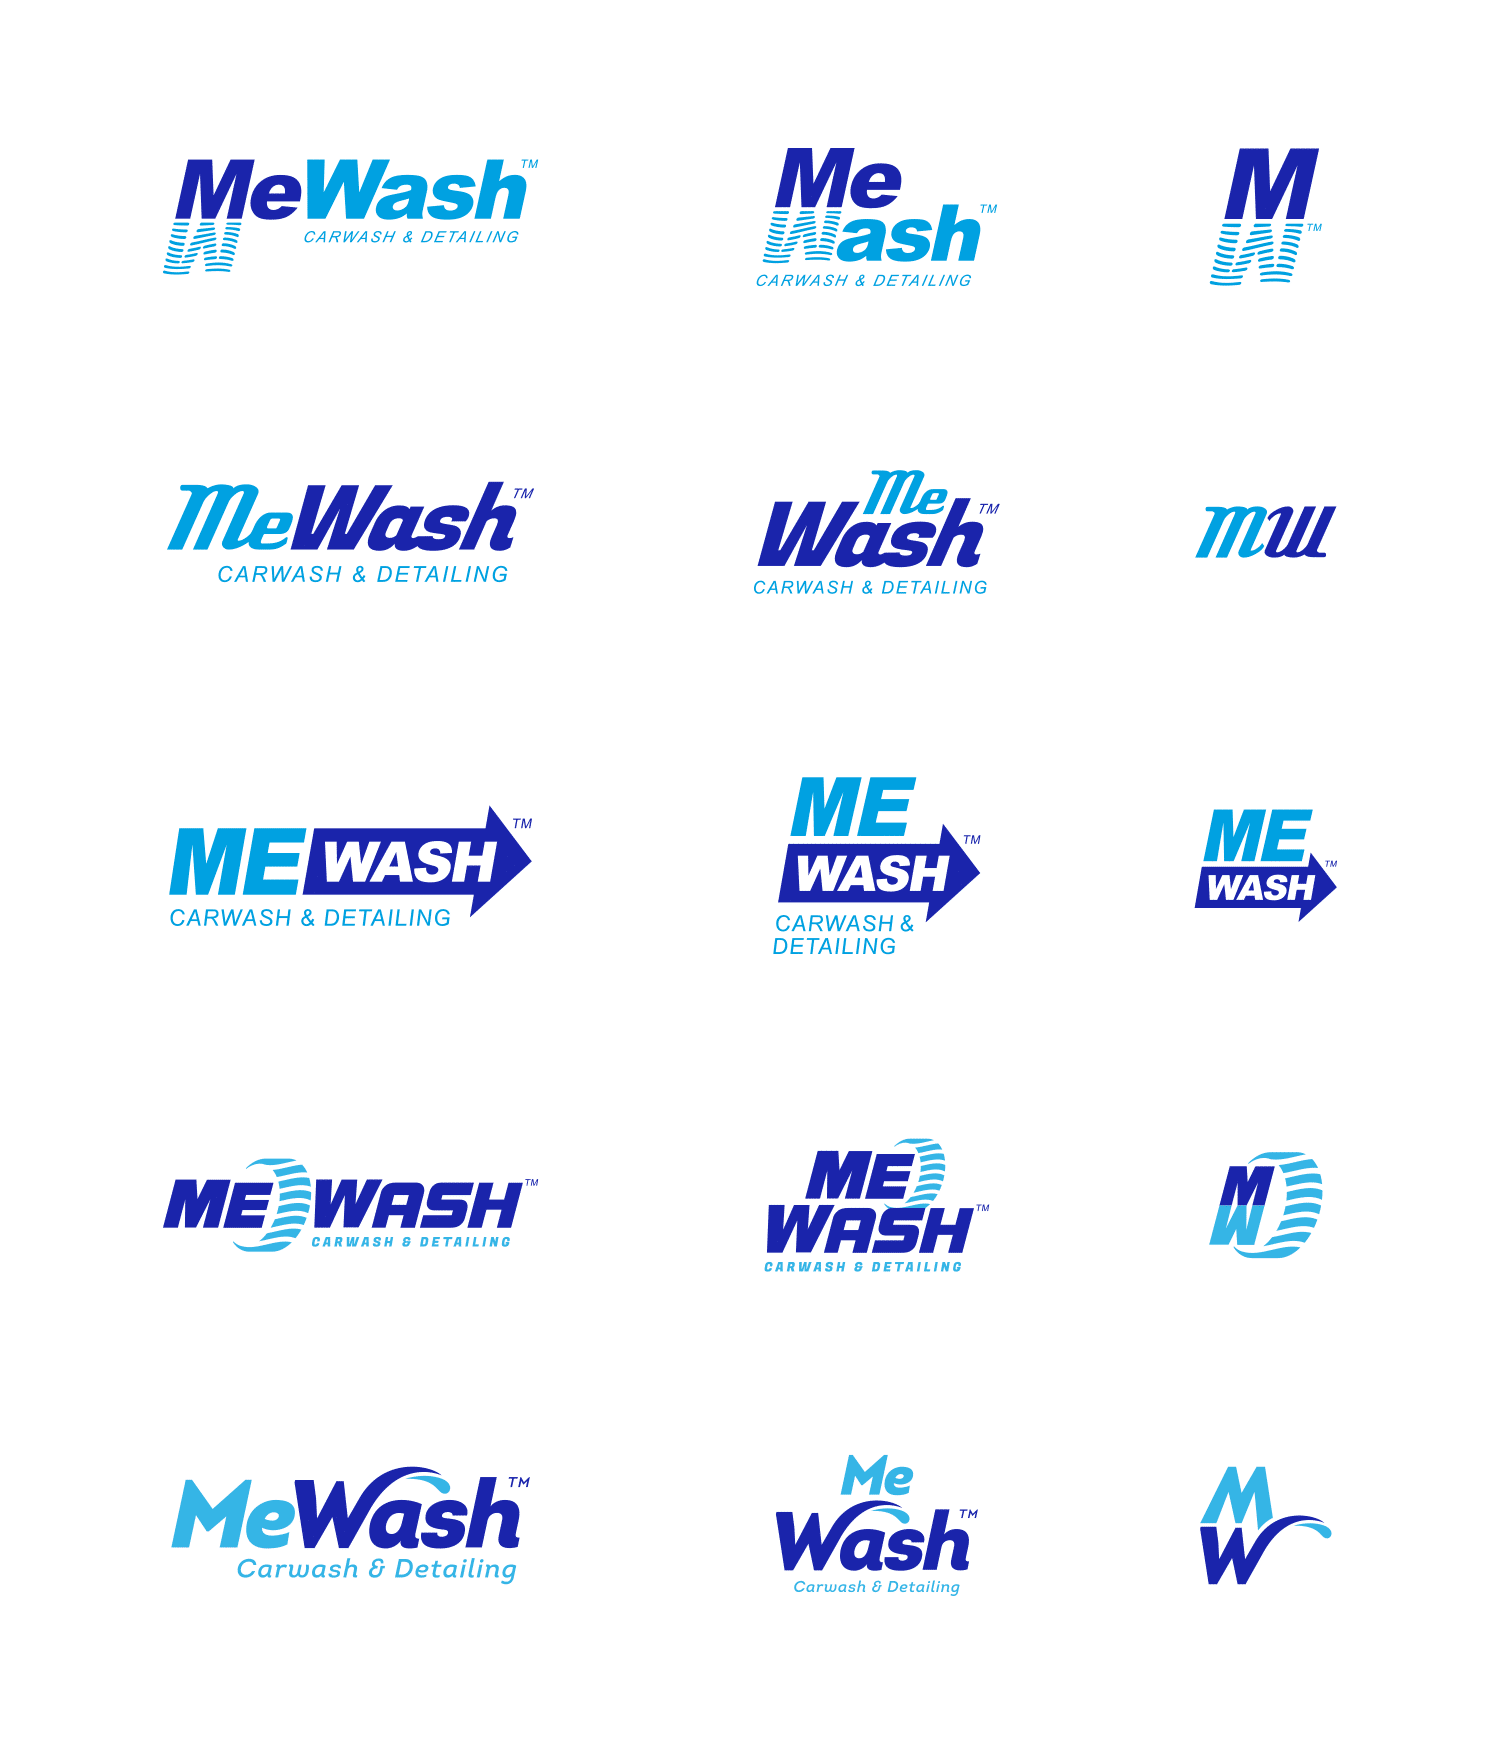 MeWash initial logo options